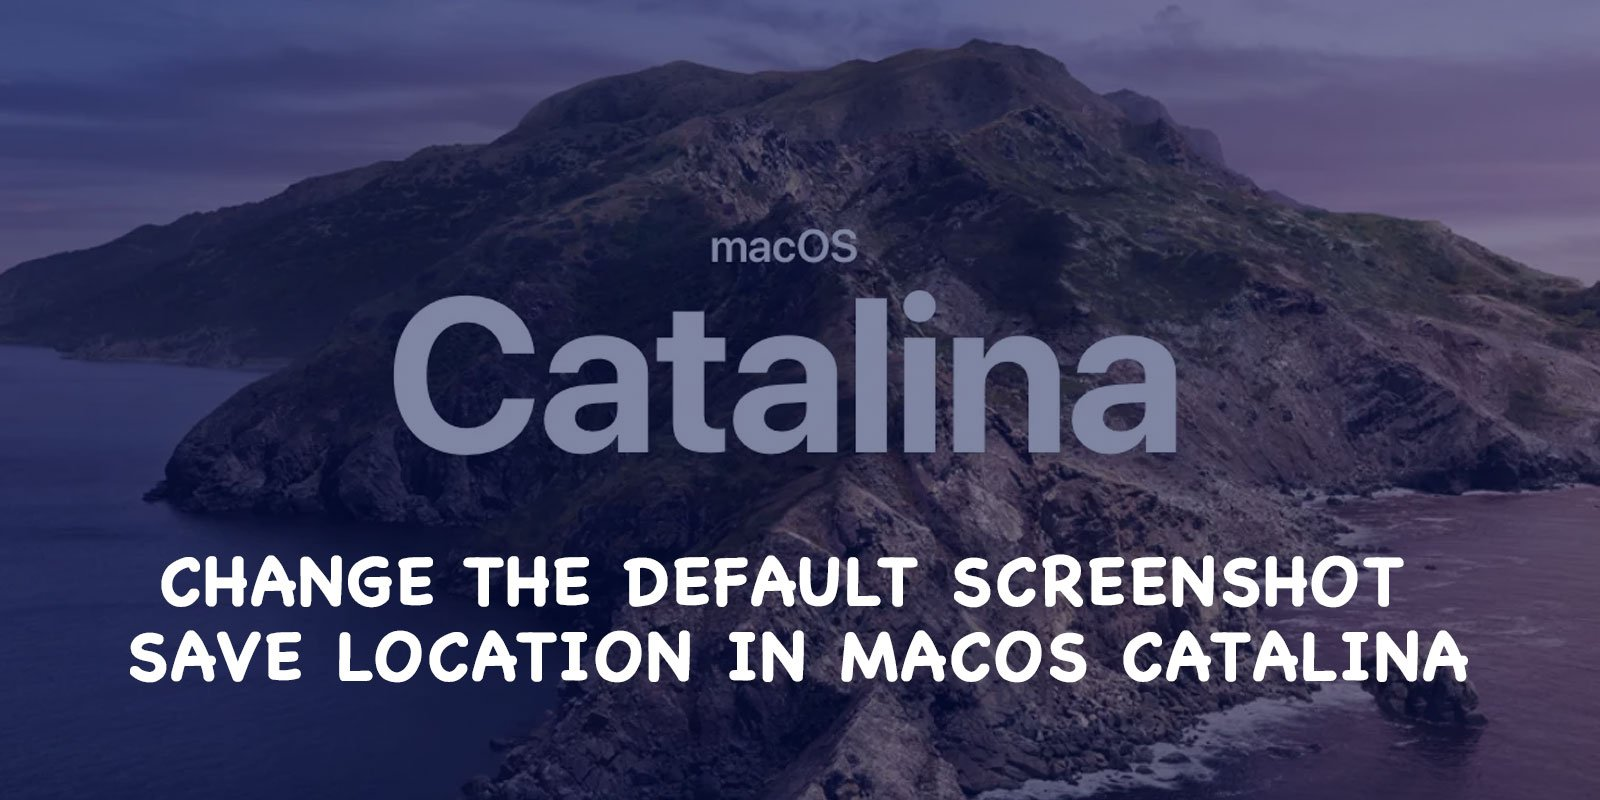 How to Change the Default Screenshot Save Location in macOS Catalina